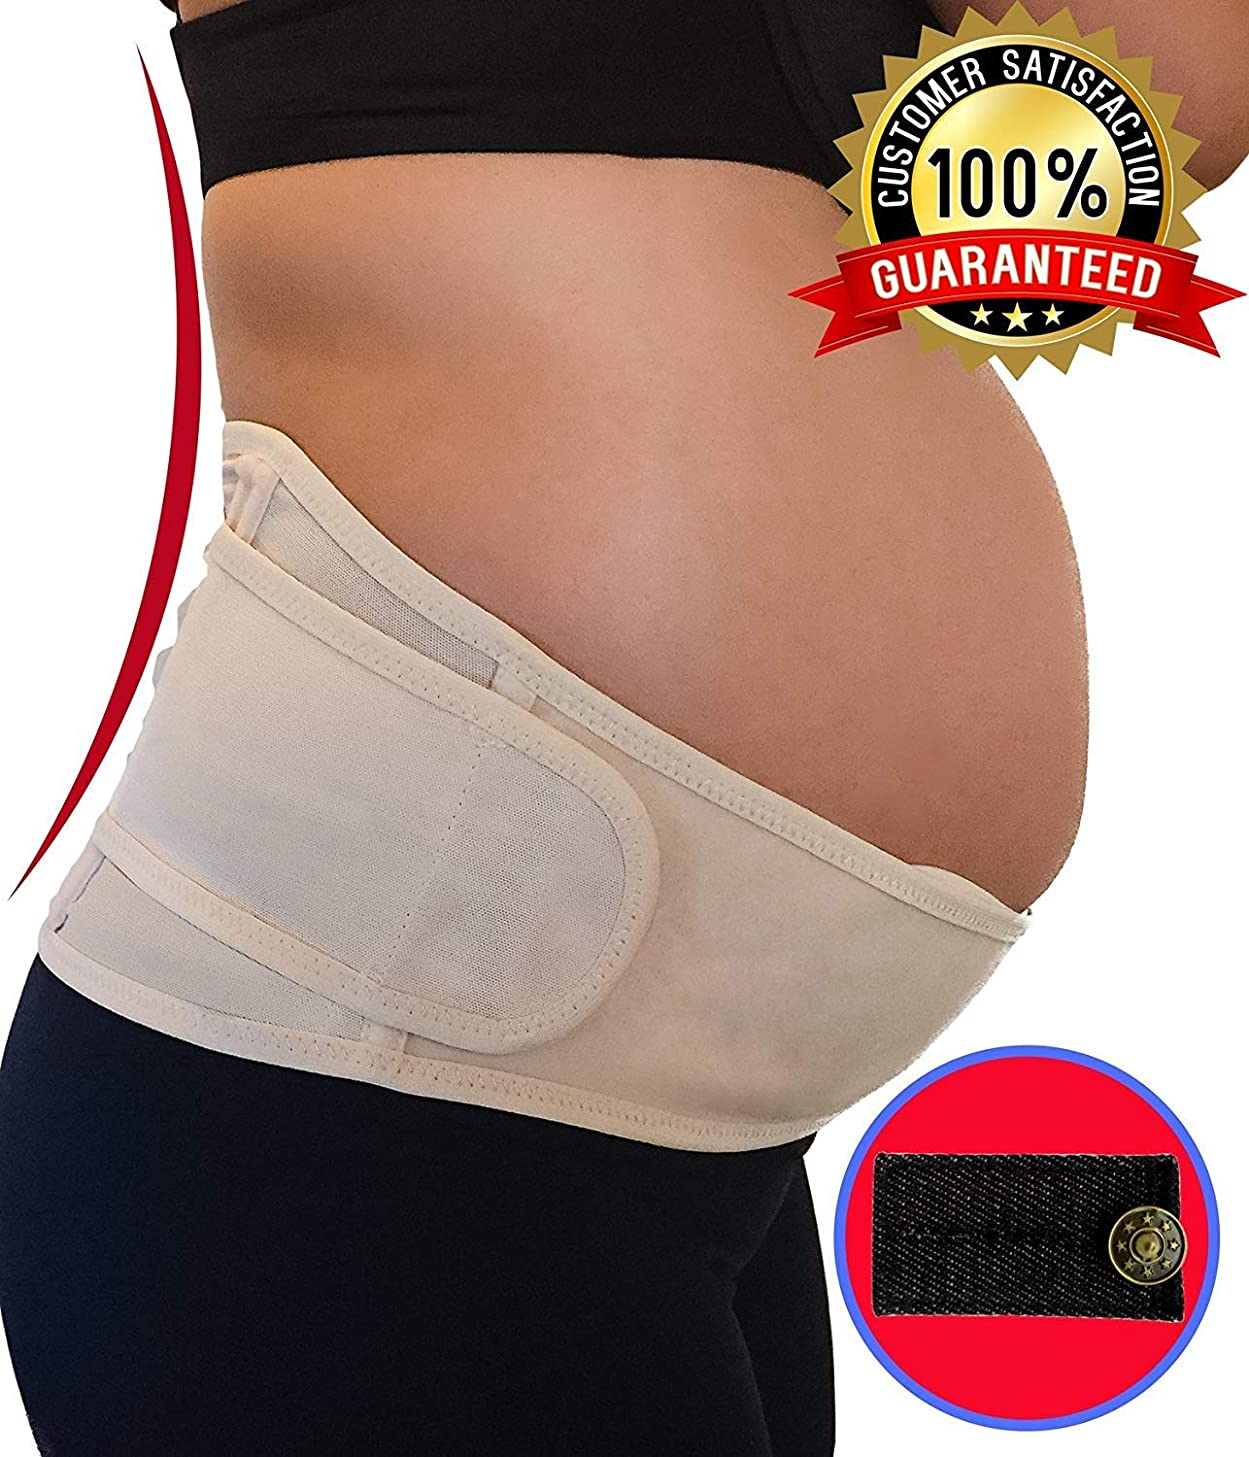 Belly Band for Pregnancy | Maternity Belt Support for Back, Pelvic, Hip, Abdomen, Sciatica Pain Relief 2nd-3rd Trimester | Comfortable Girdle for Running, Walking, Sitting (BEIGE)